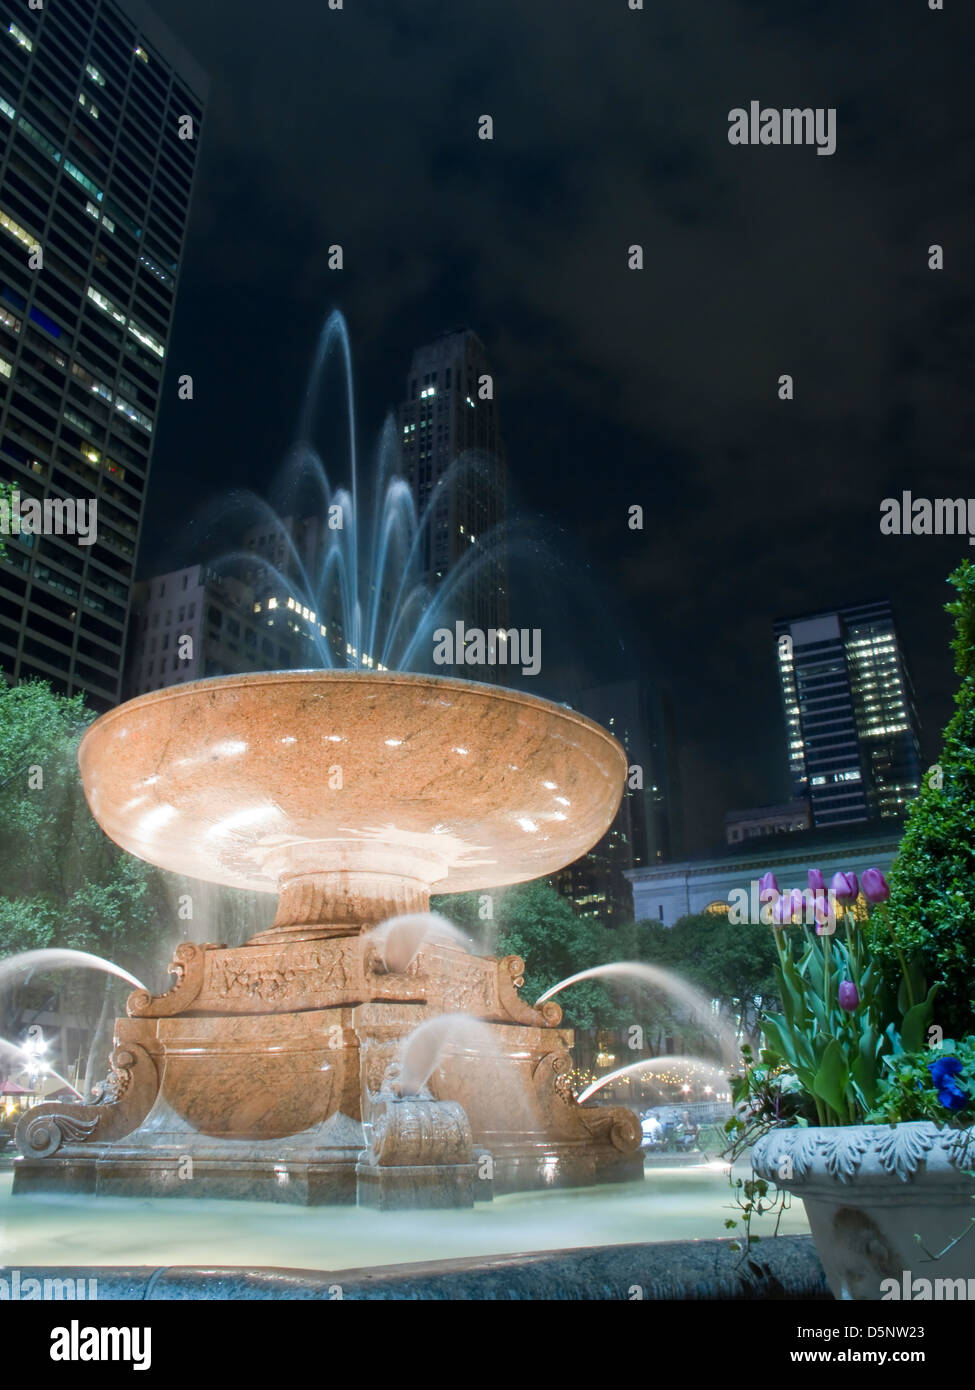 Illuminated Water Fountain at Night (Motion Blur) - Stock Image